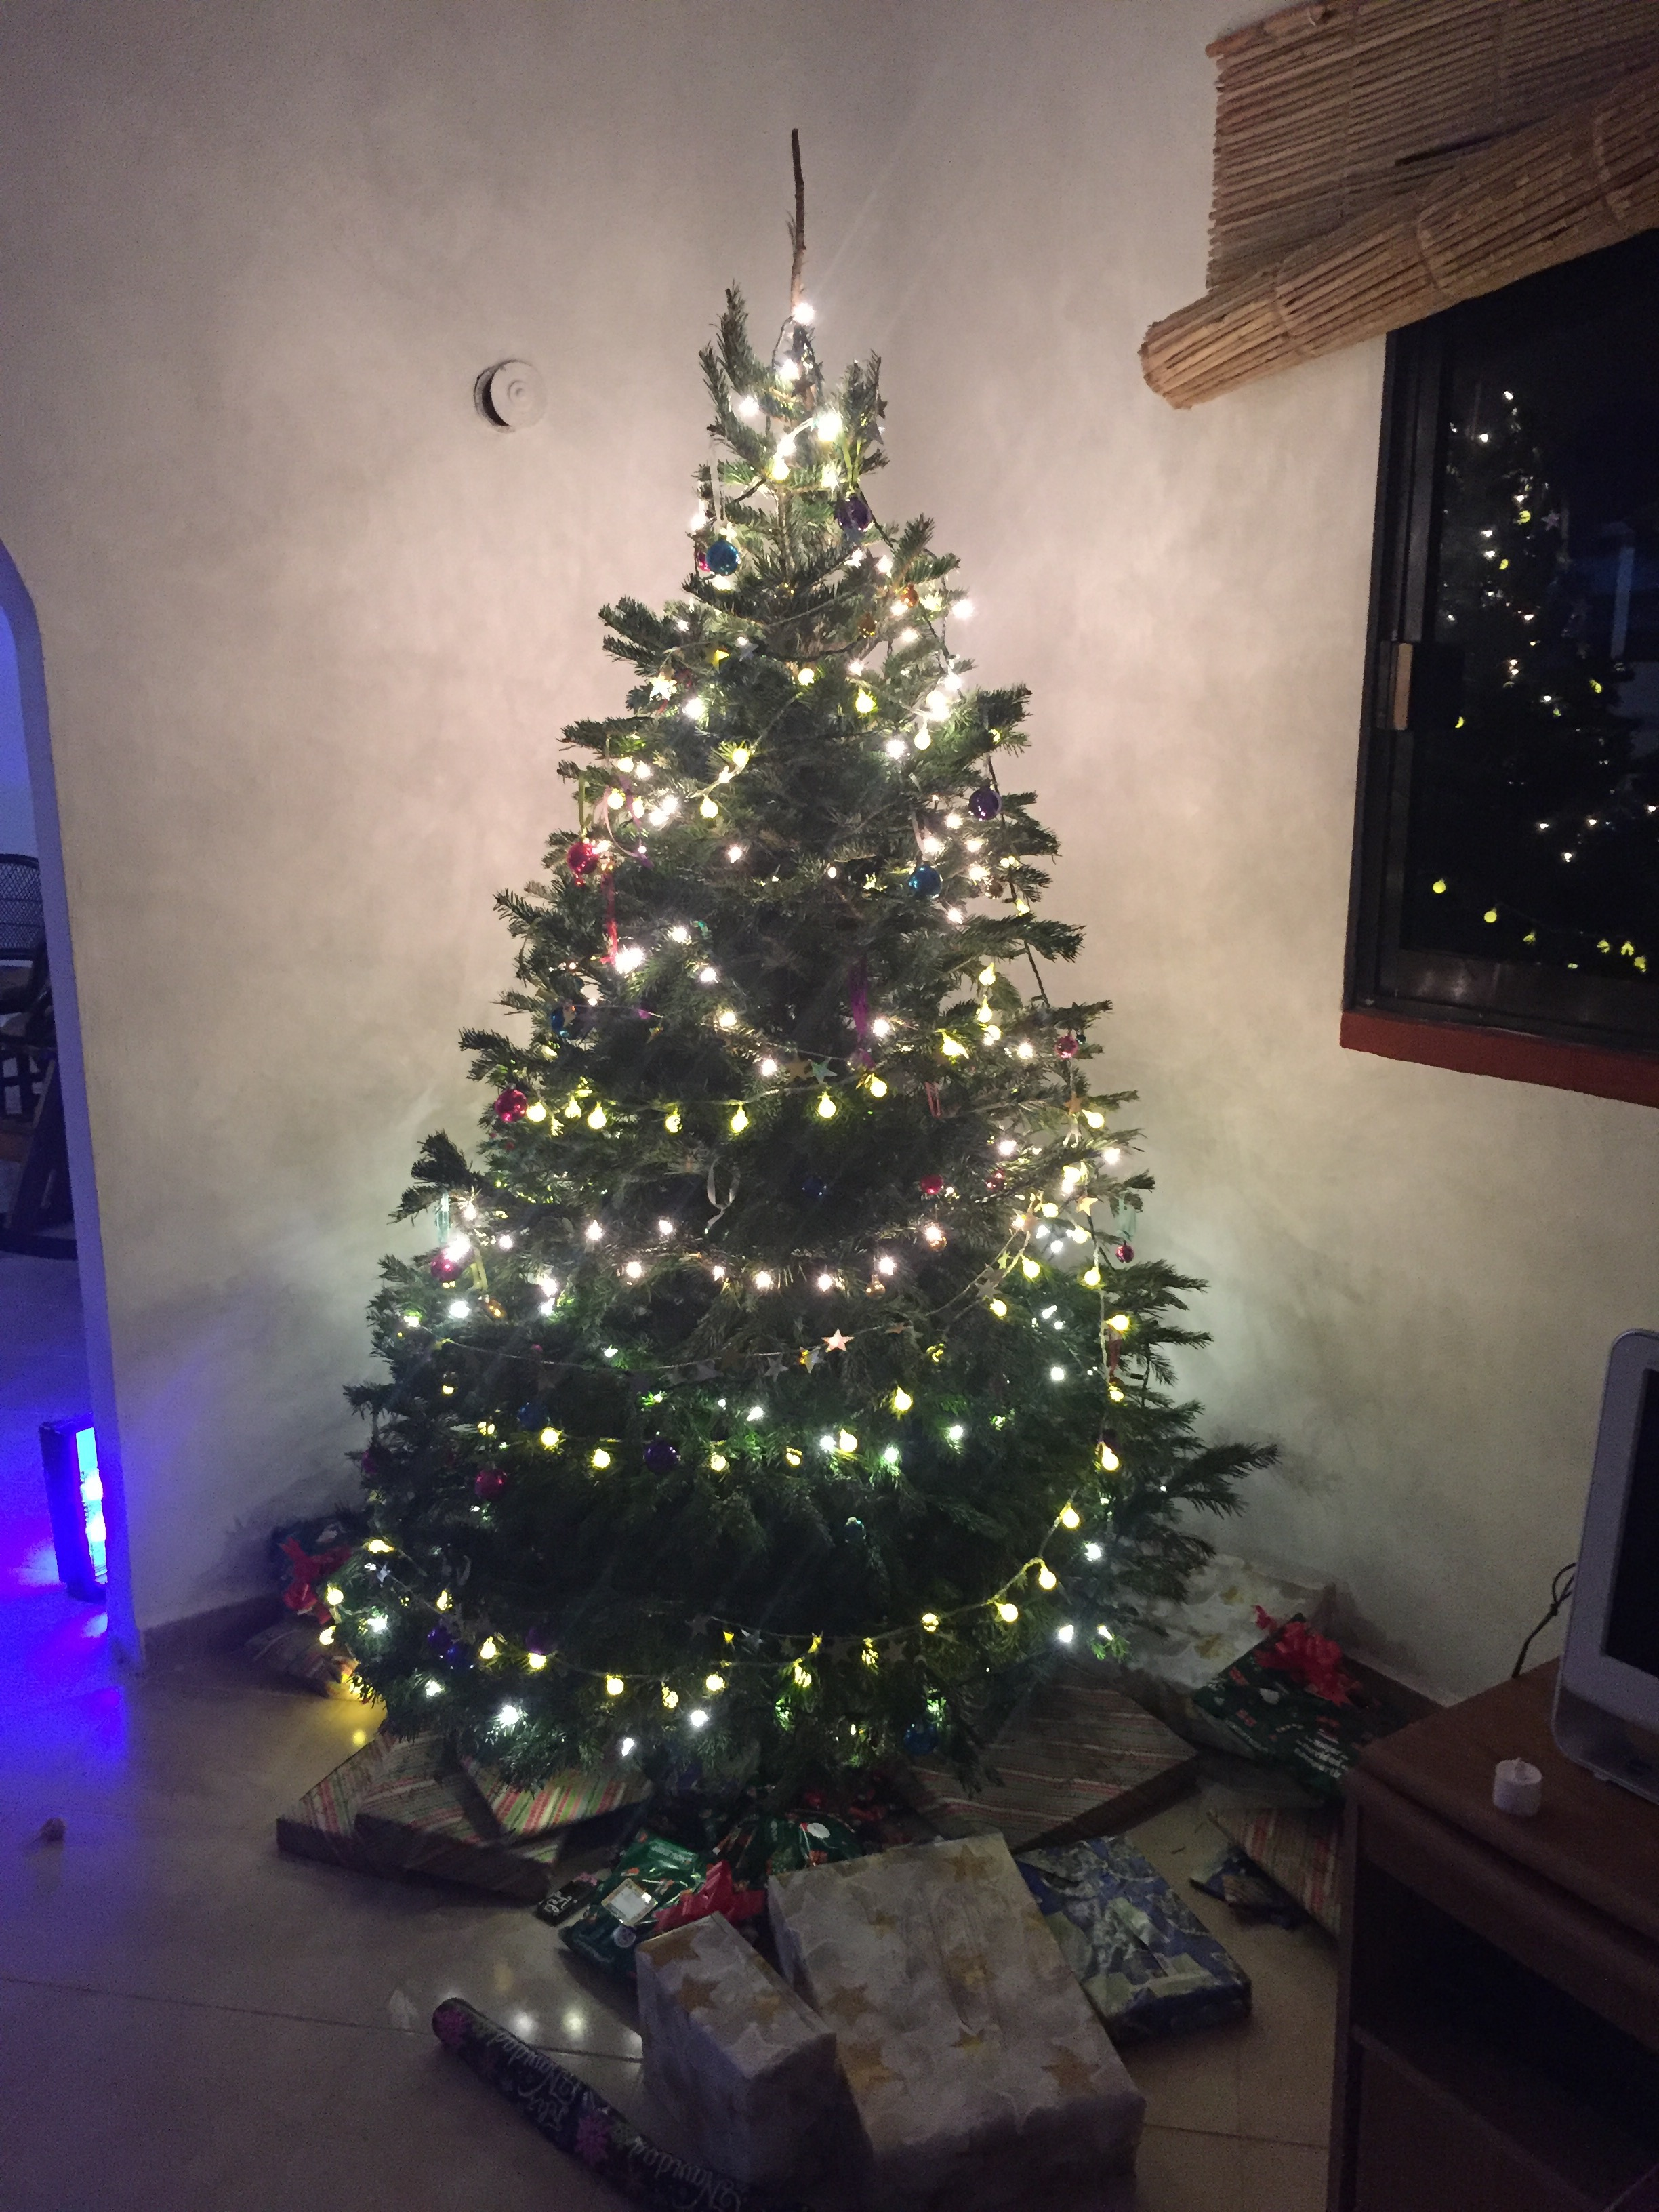 Christmas 2016: Christmas in a Beach House